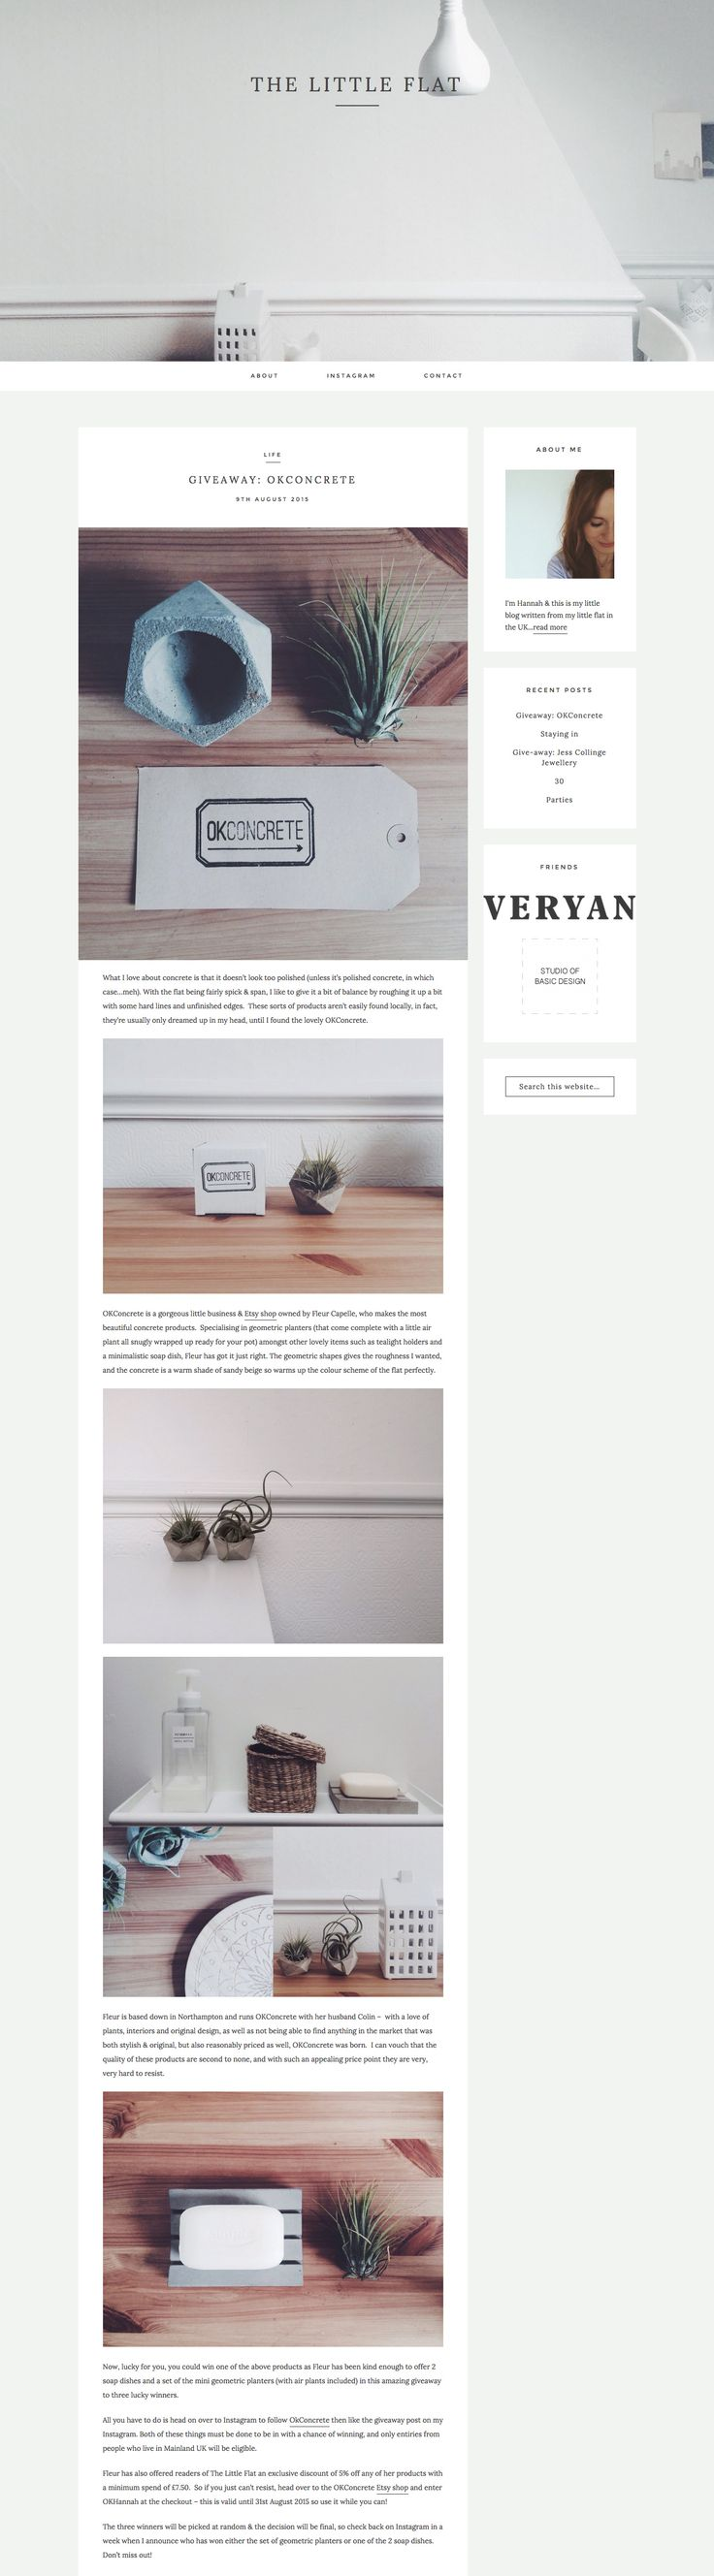 The Little Flat got minimalism just right with their lovely new site running on Station Seven's Kindred theme. #webdesign #wordpress